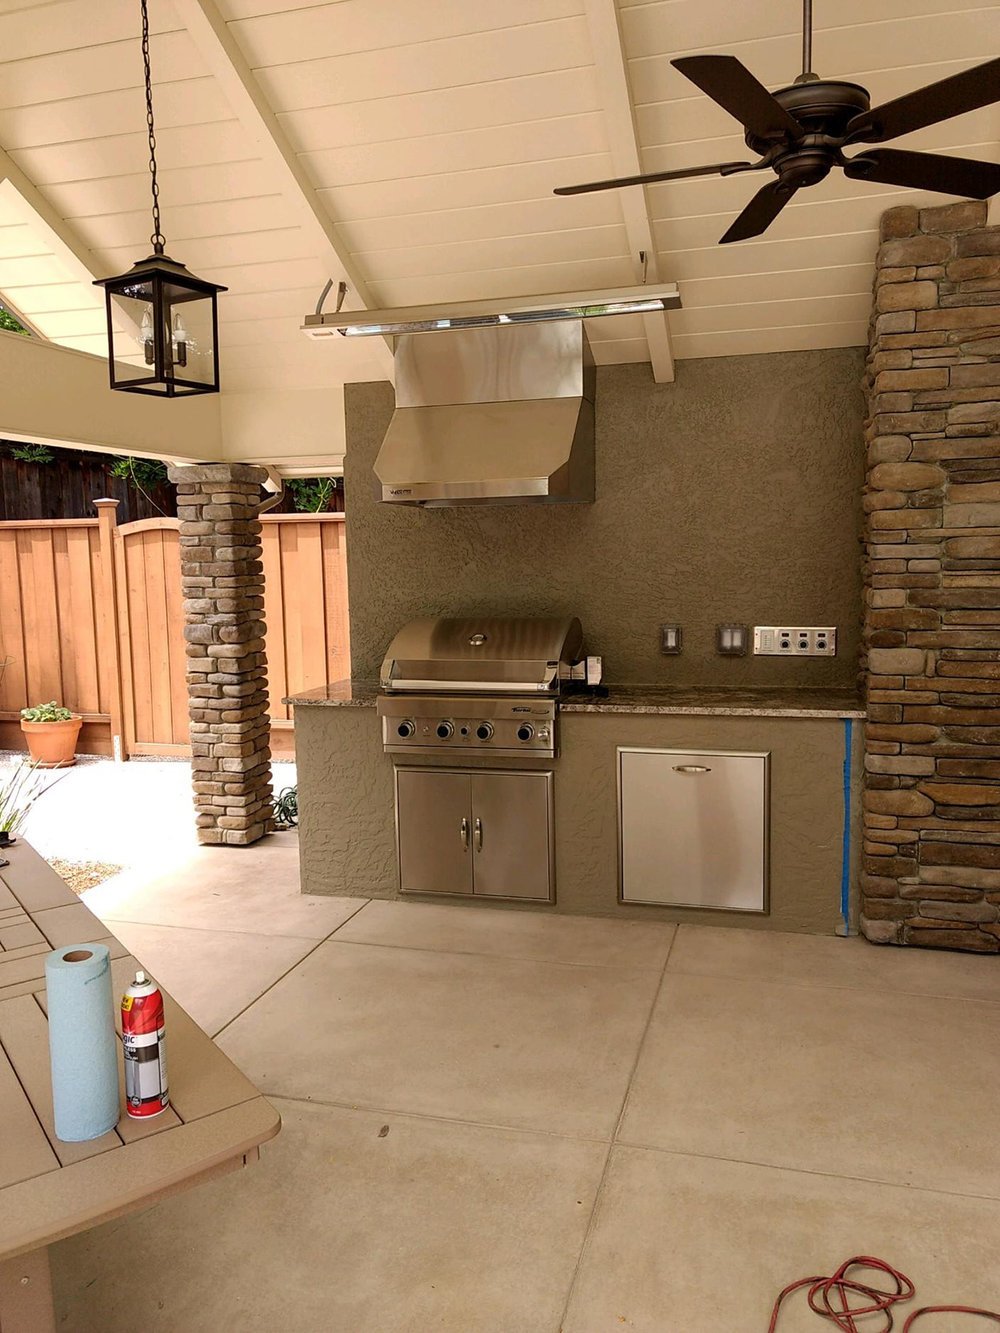 01-Hydorn Outdoor Kitchen—San Jose, CA.jpg